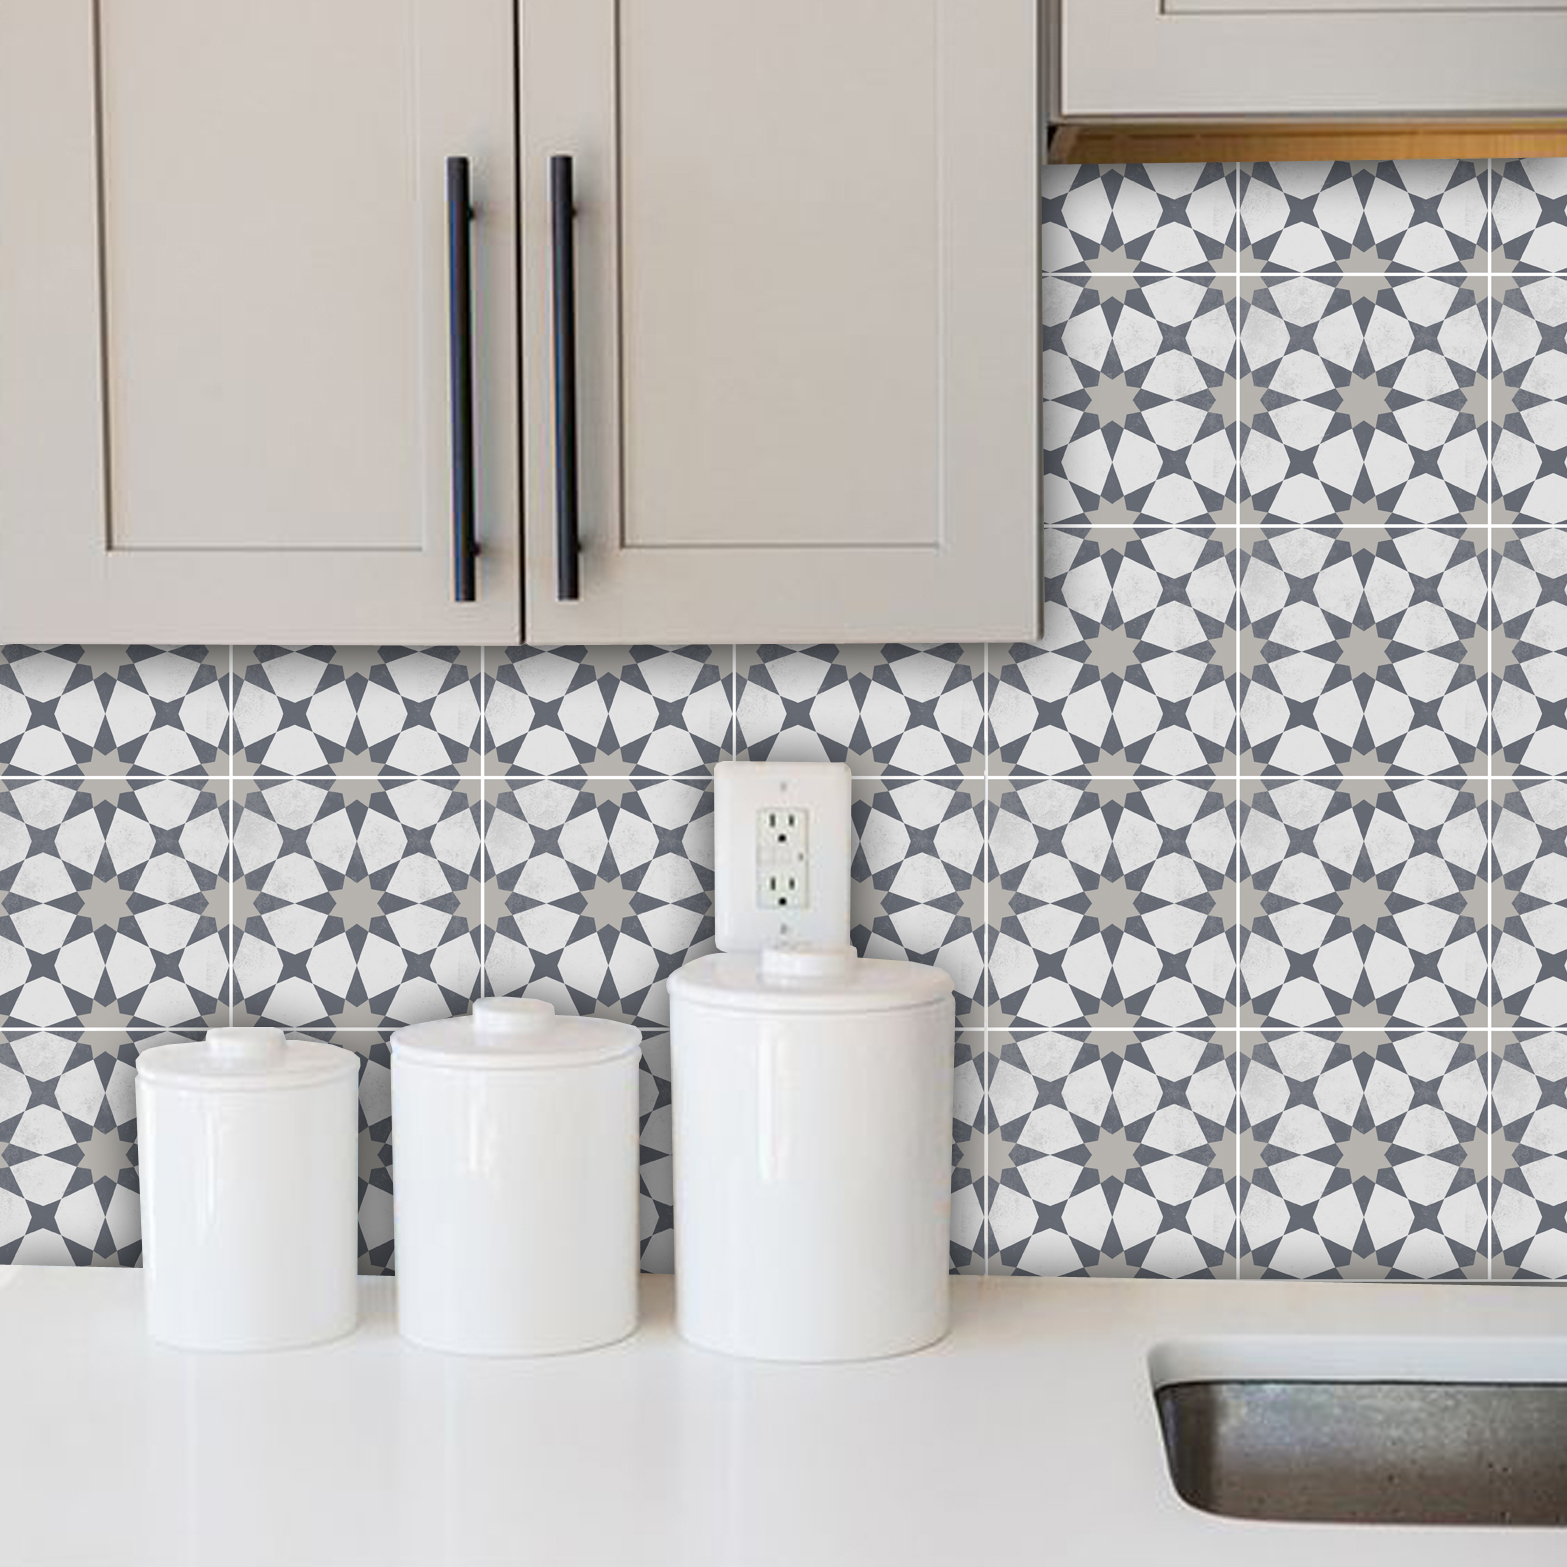 Agadir-Grey-splashback